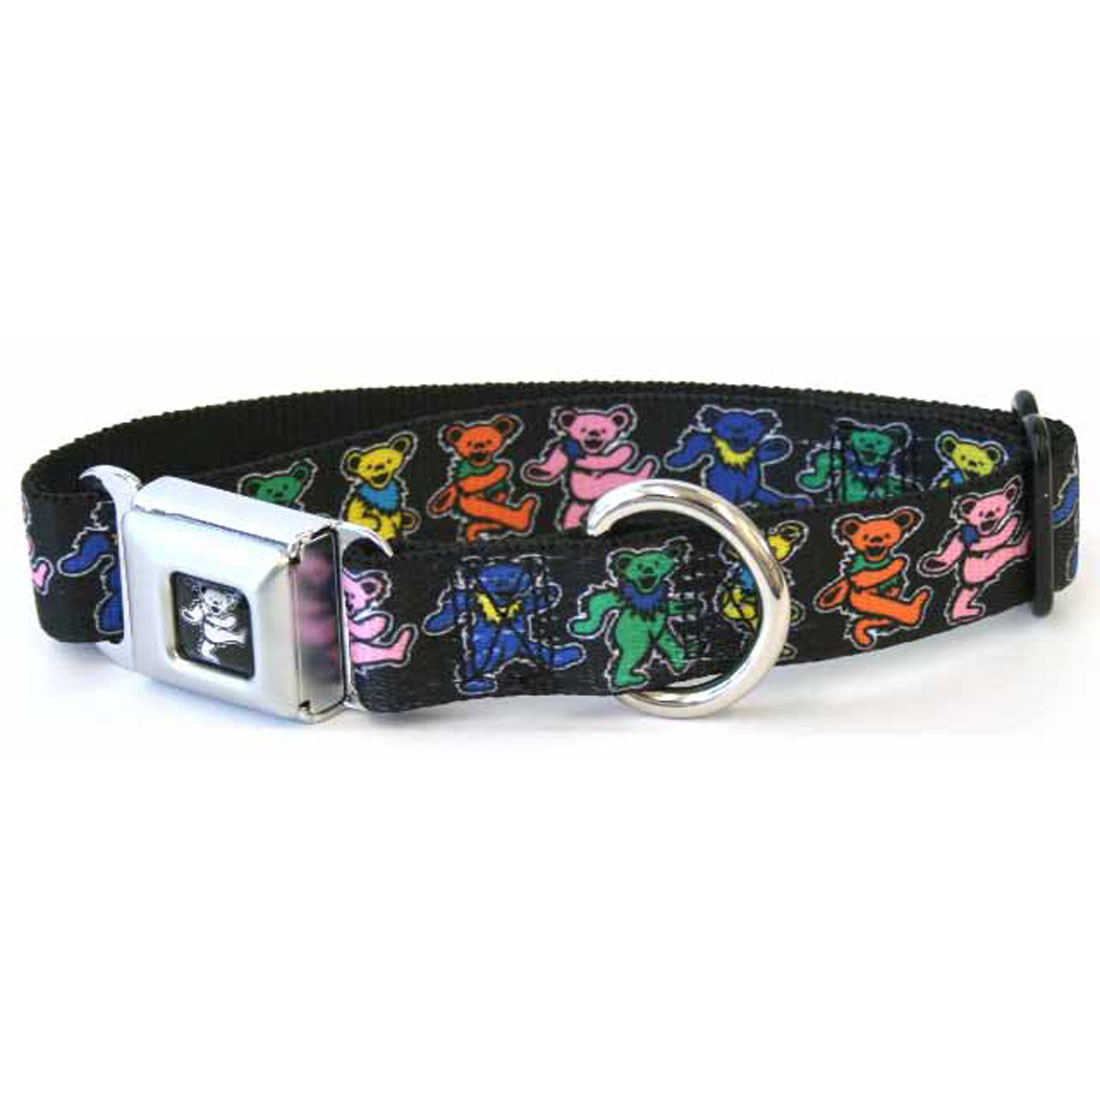 Dancing Bear Dog Collar Lg Black